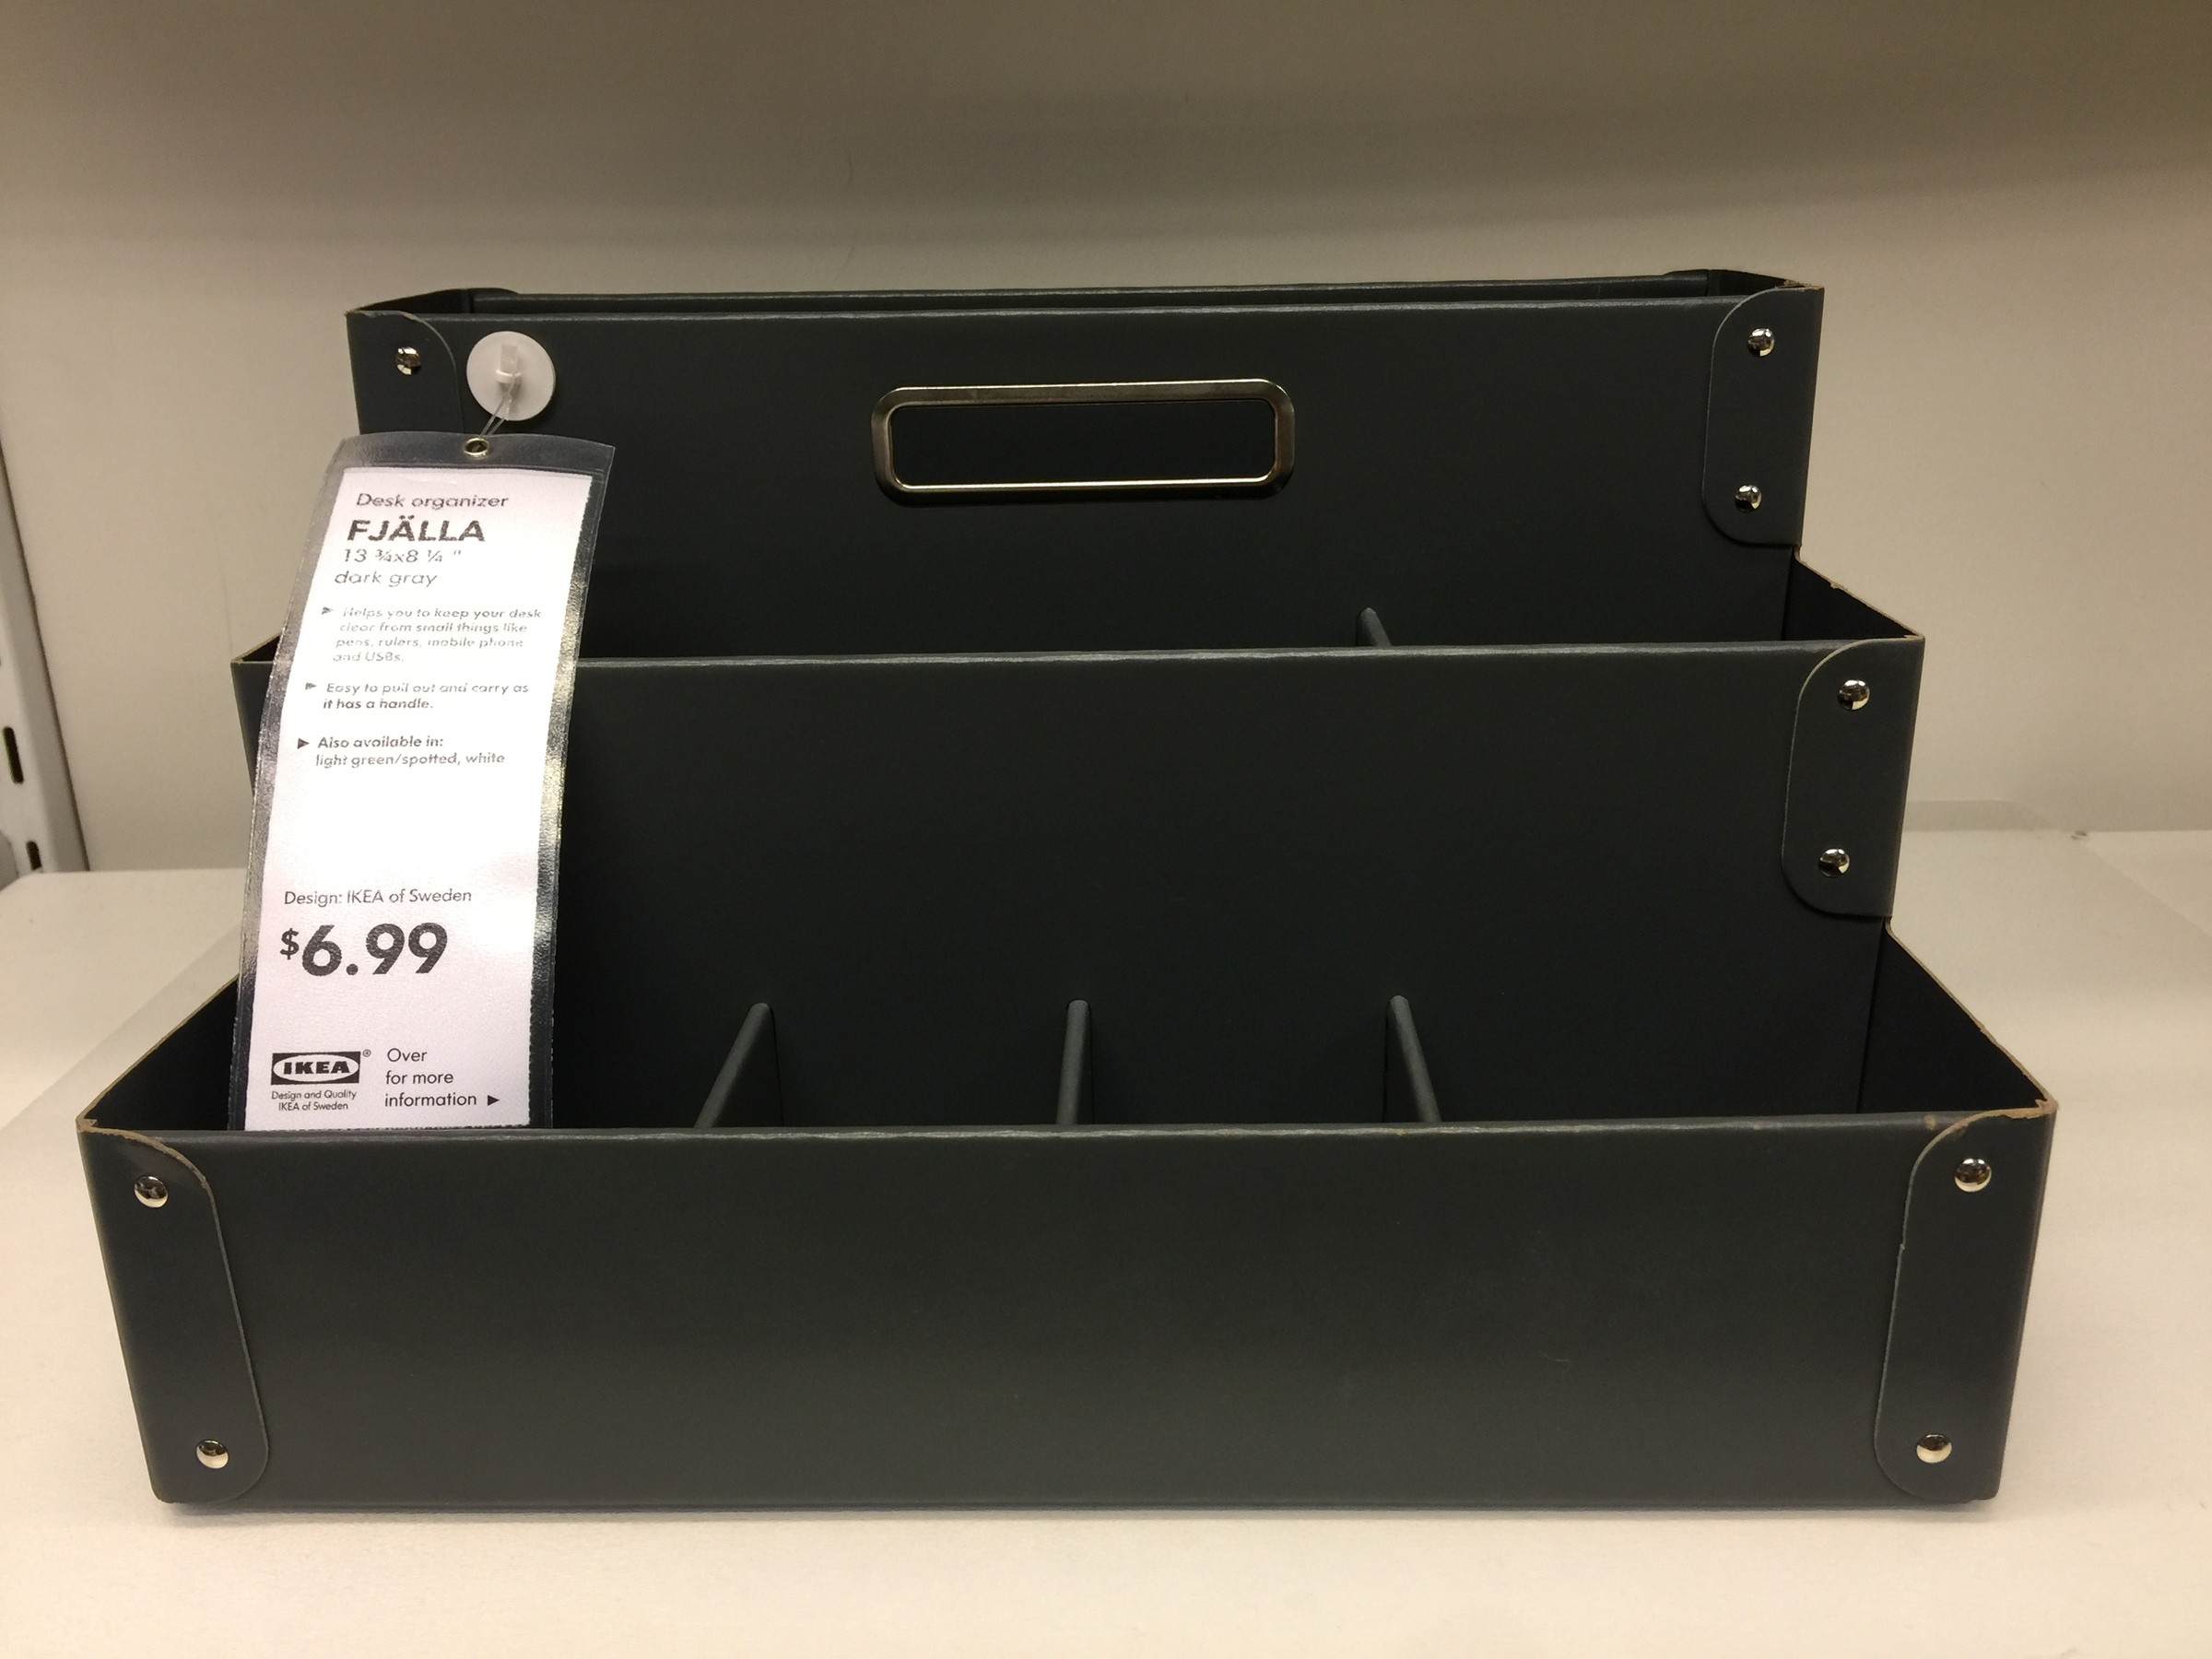 Ikea Desk Organizer  10 Classroom Must Haves From Ikea